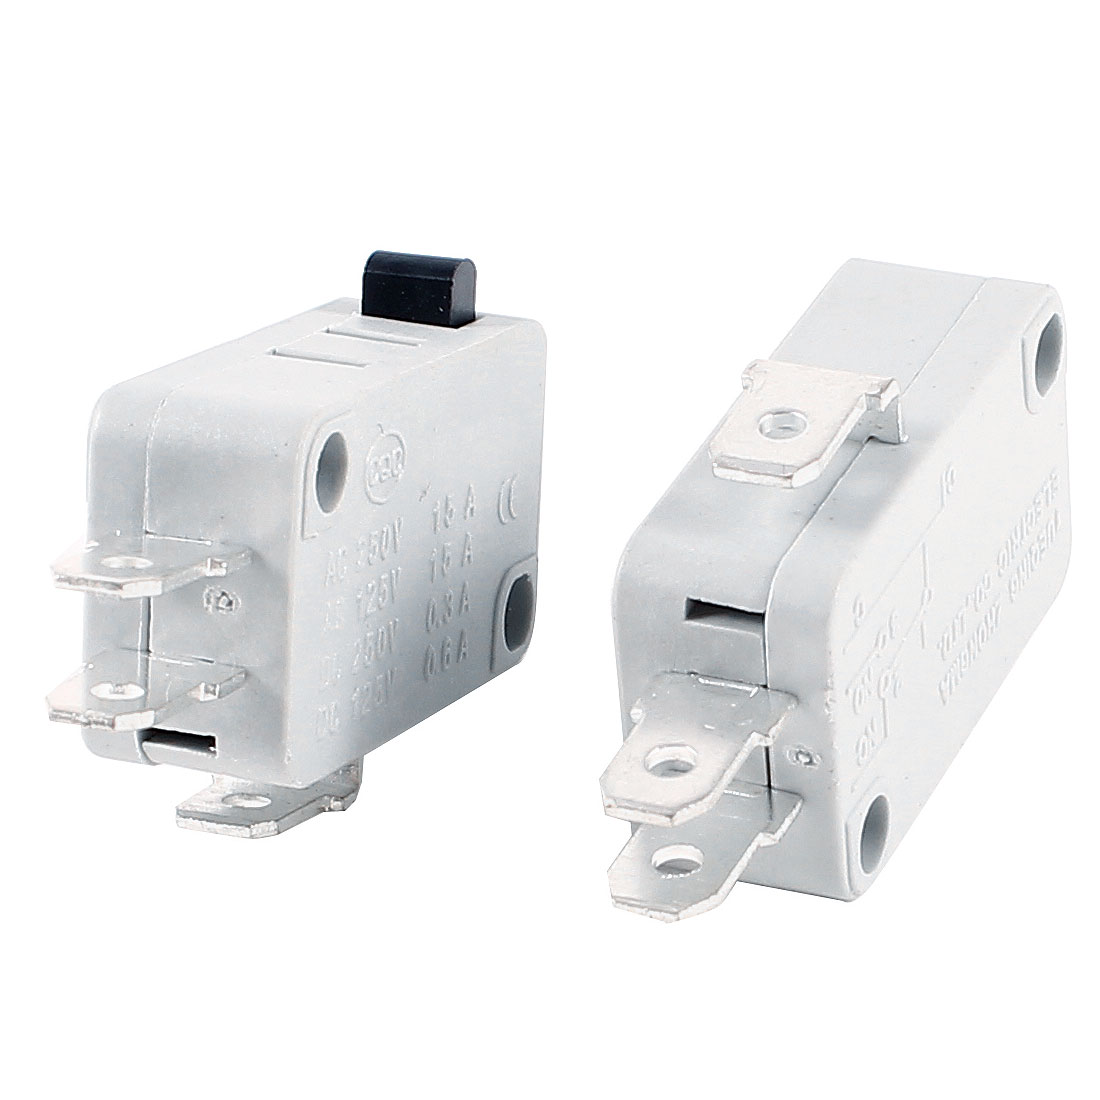 2 Pcs 3 Pin 3-Terminals Push Button Actuator SPDT Micro Switch Off White